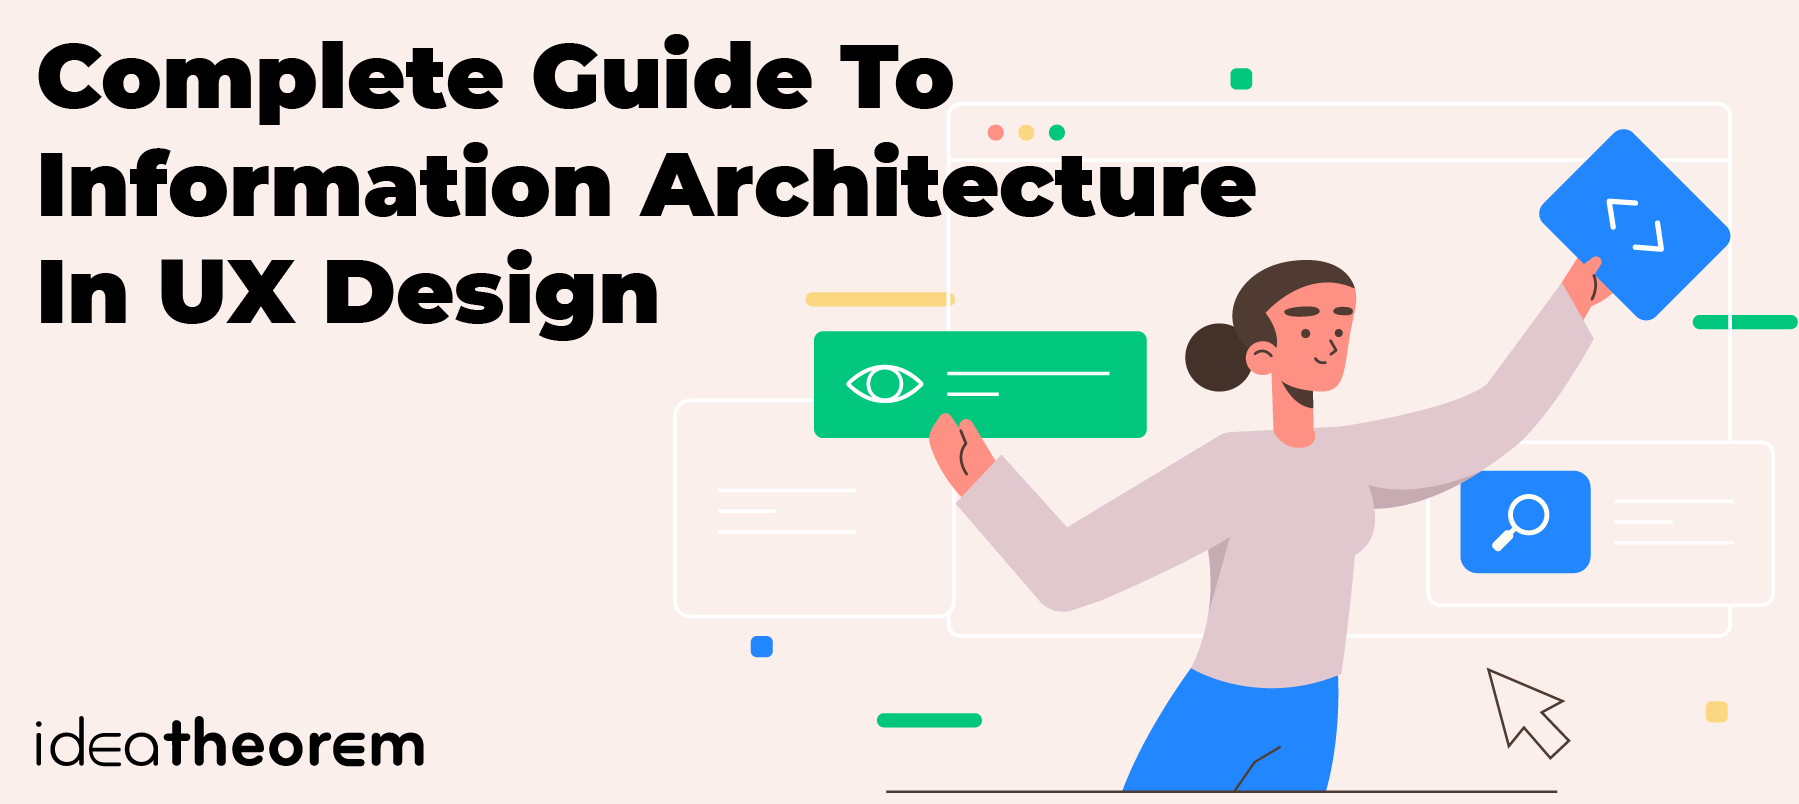 Complete Guide To Information Architecture